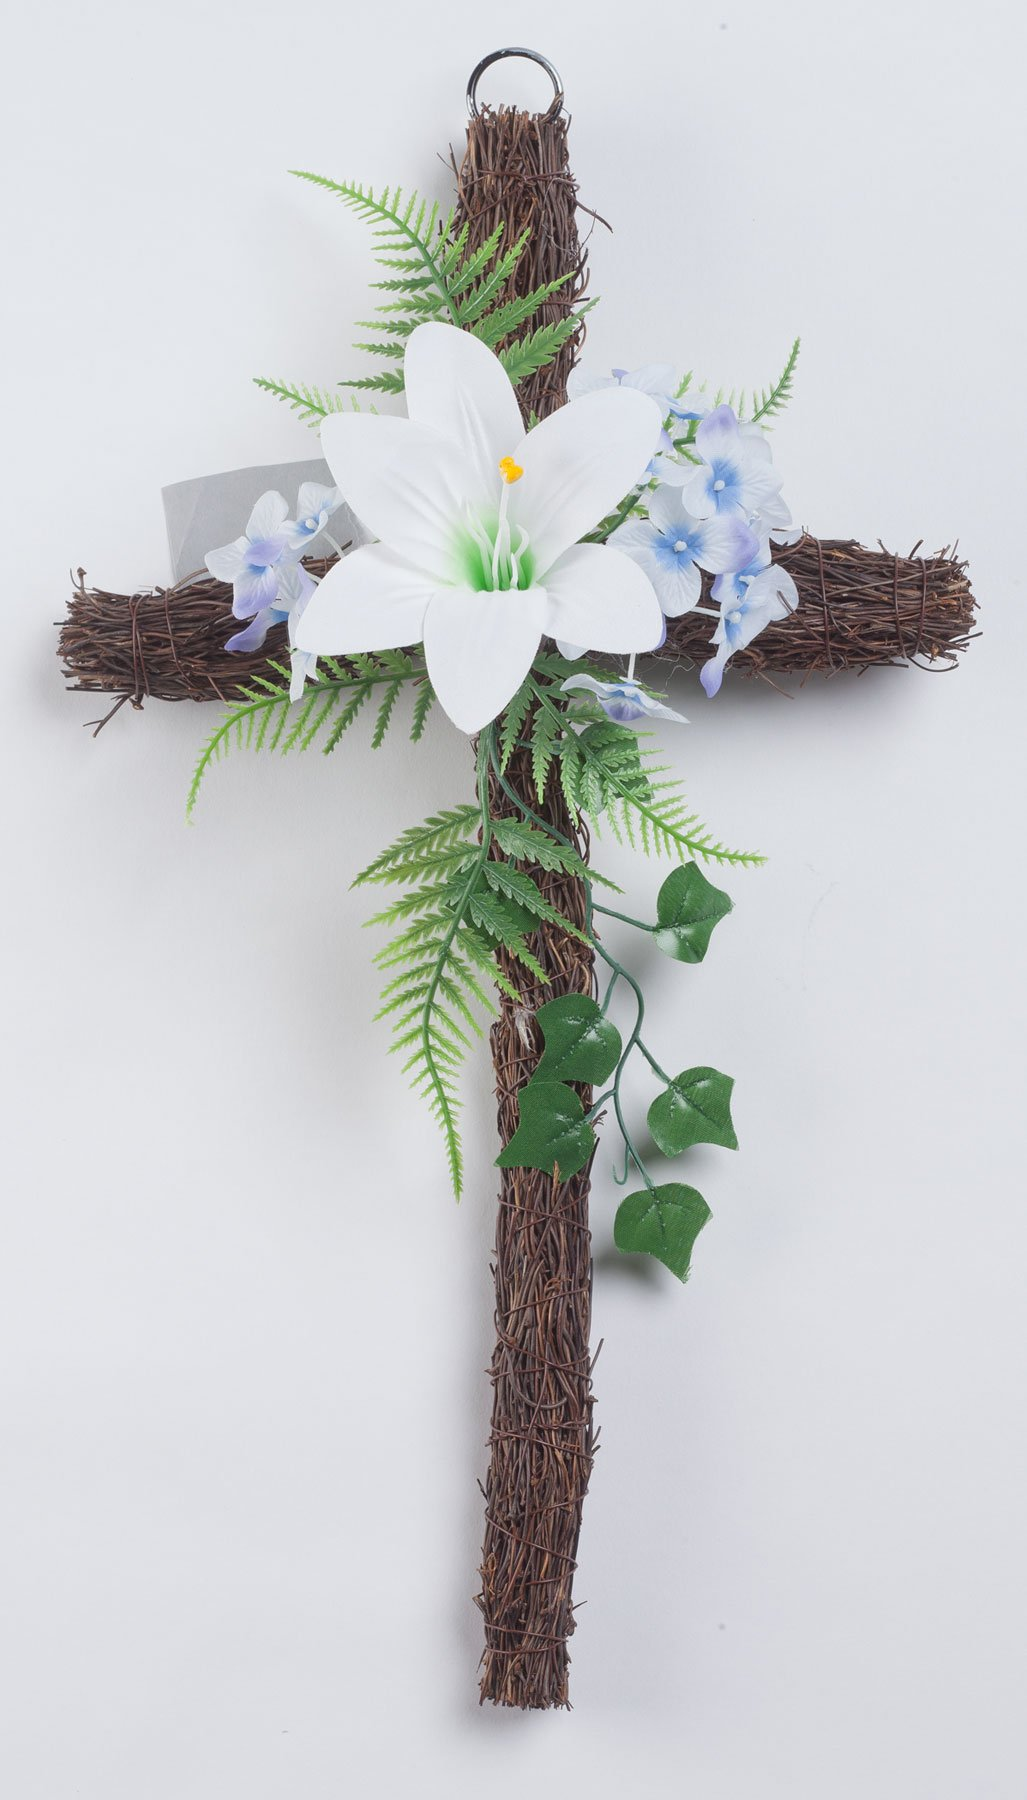 Fox-Valley-Traders-Grapevine-Easter-Cross-with-Flowers-18-Long-x-10-Wide